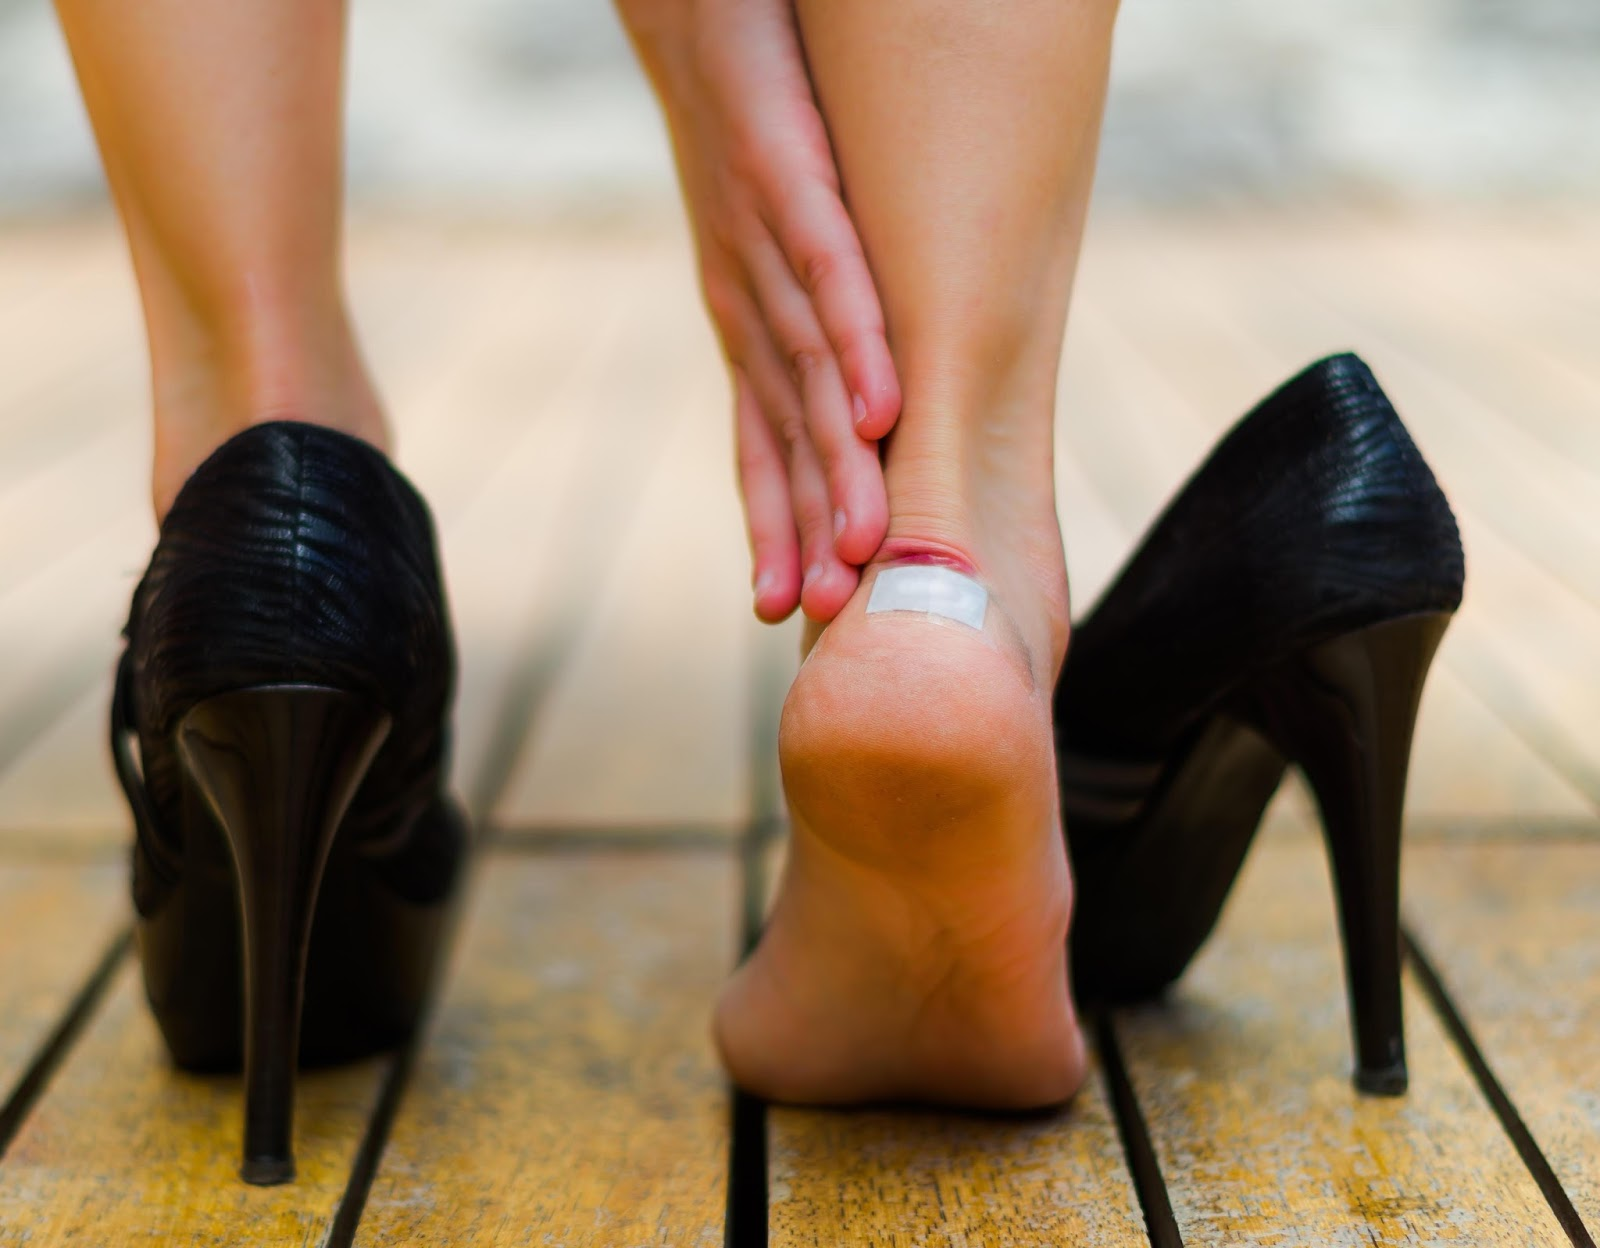 There is a risk of physical injury from slipping or falling, as well as possible damage to the feet, legs and back from prolonged wearing of high heels while at work